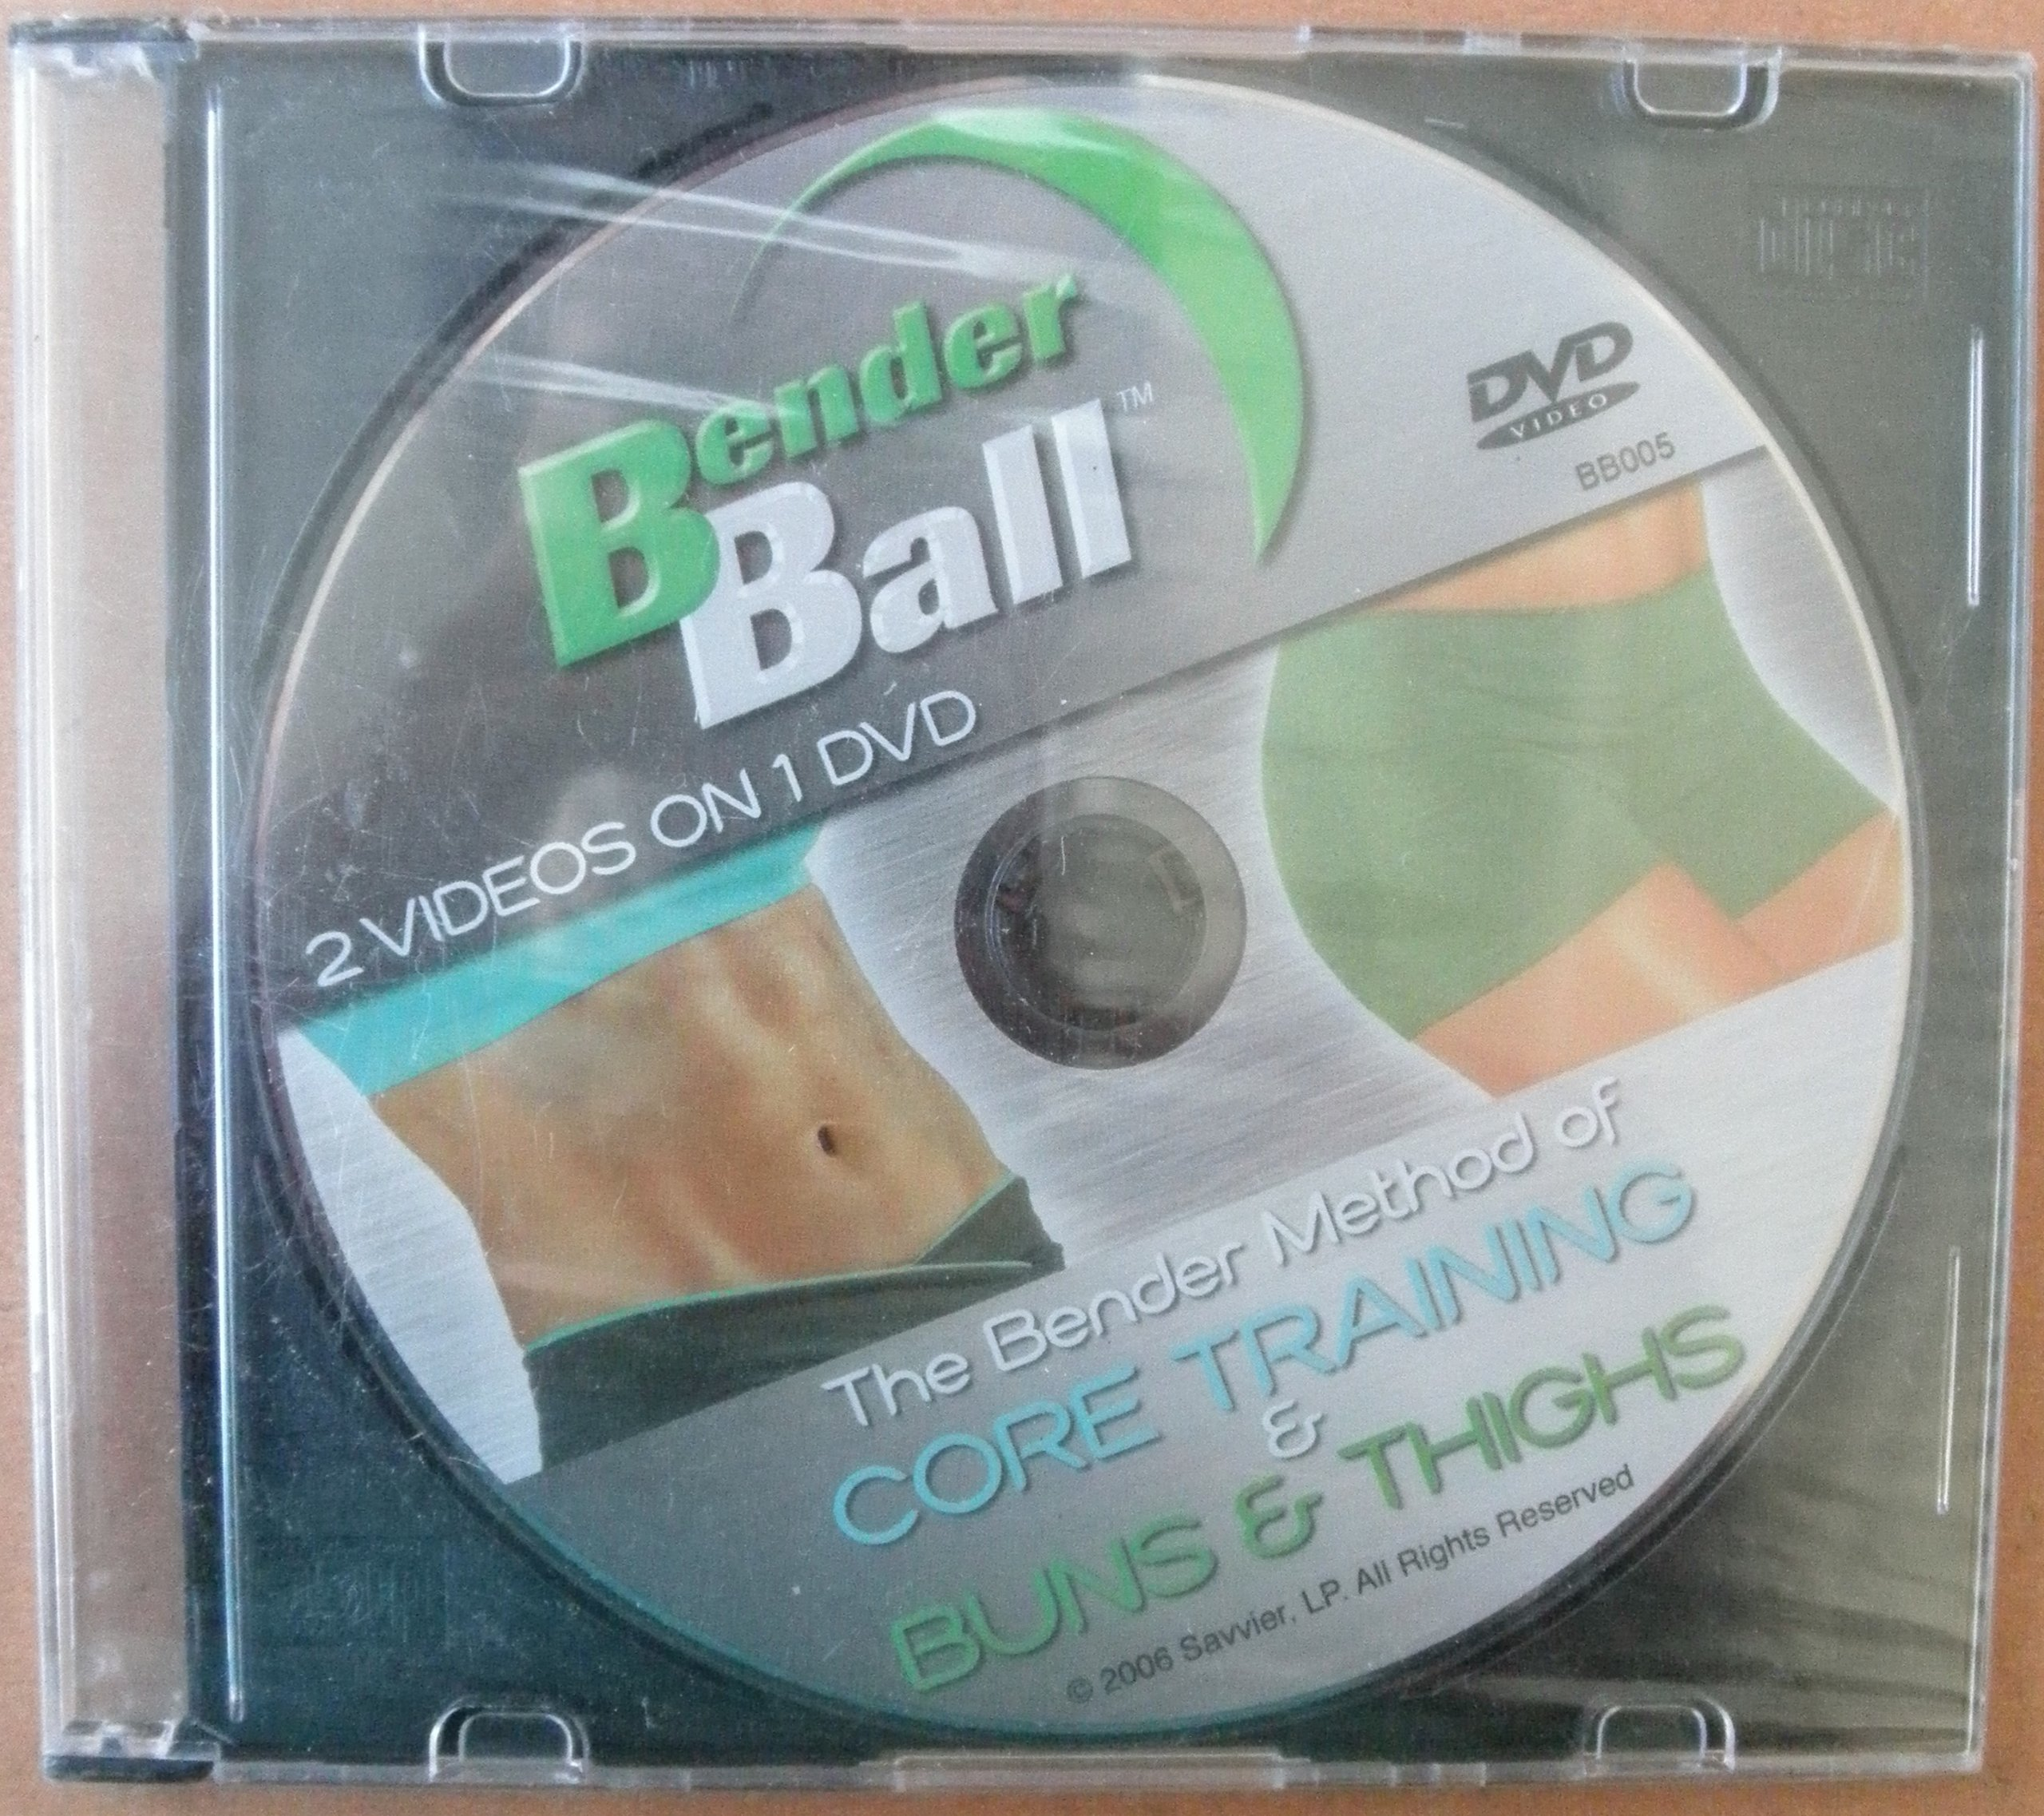 Bender Ball: The Bender Method of Core Training and Buns & Thighs - DVD